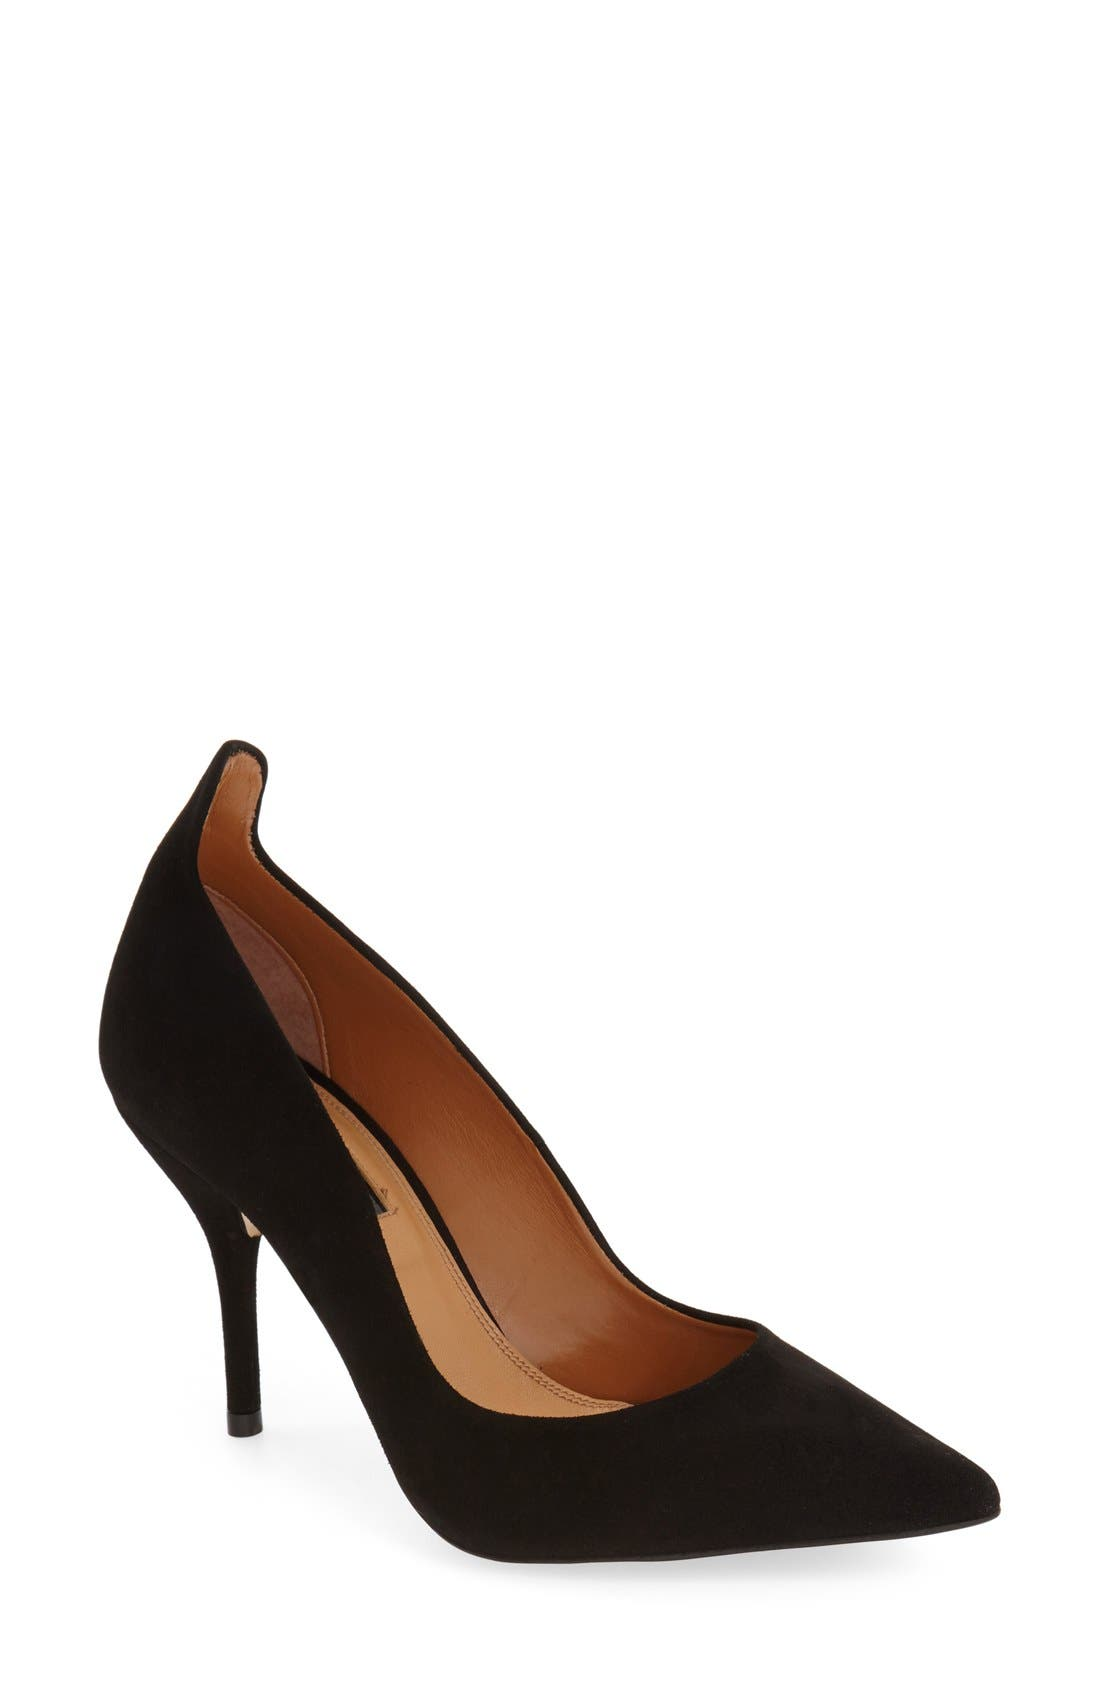 'Giddy' Pointy Toe Pump,                         Main,                         color, Black